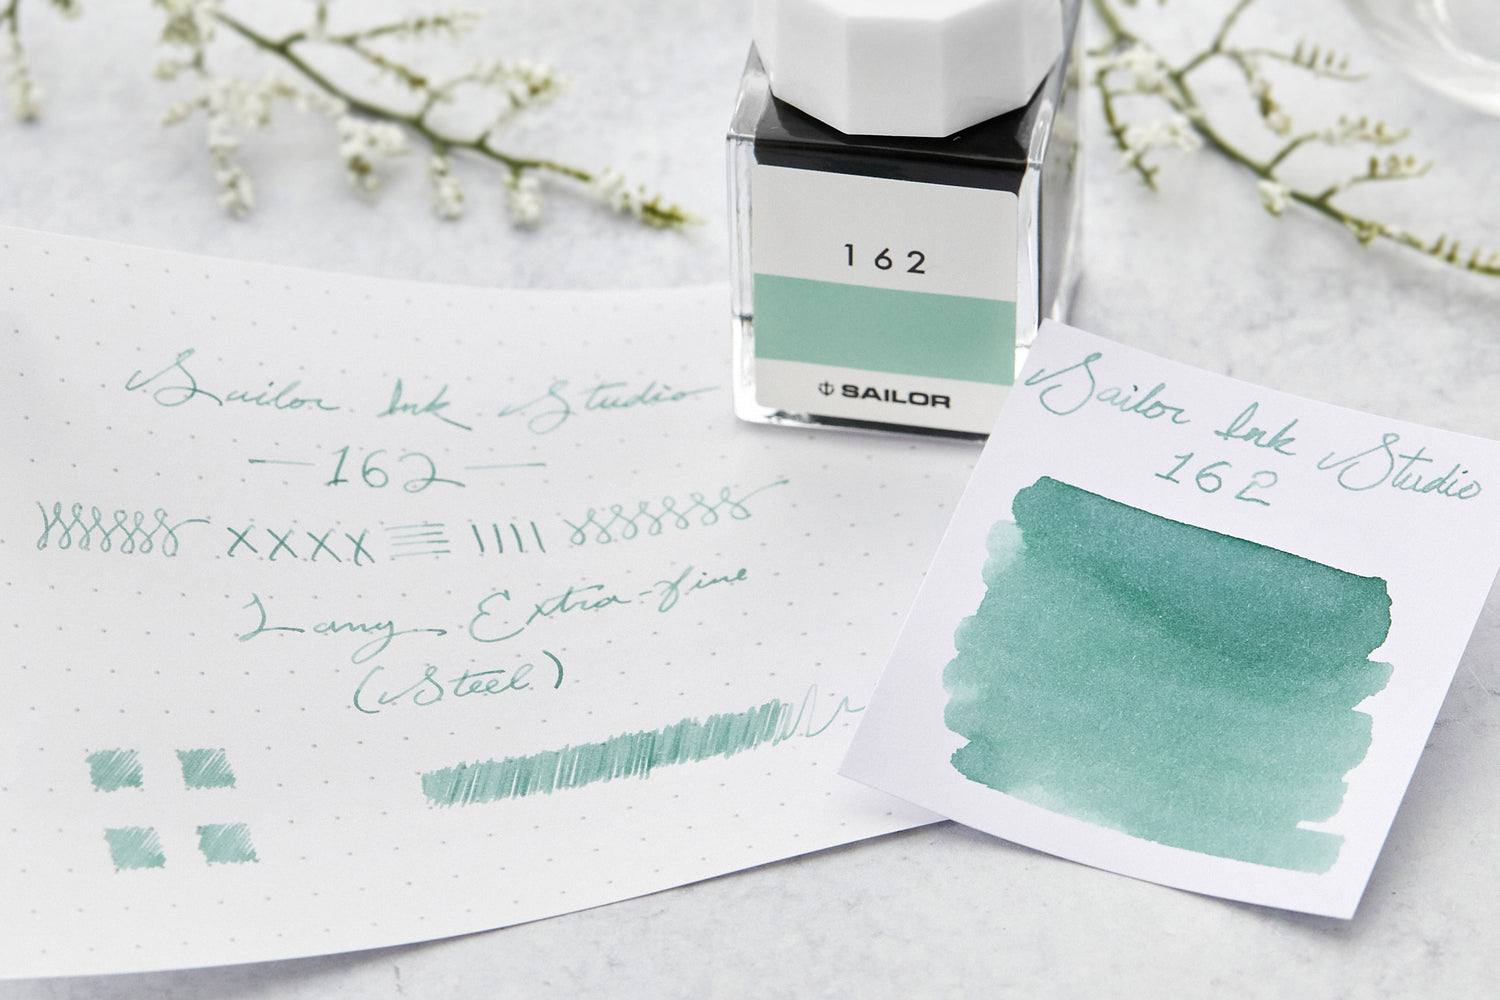 Sailor Ink Studio 162 - Ink Sample